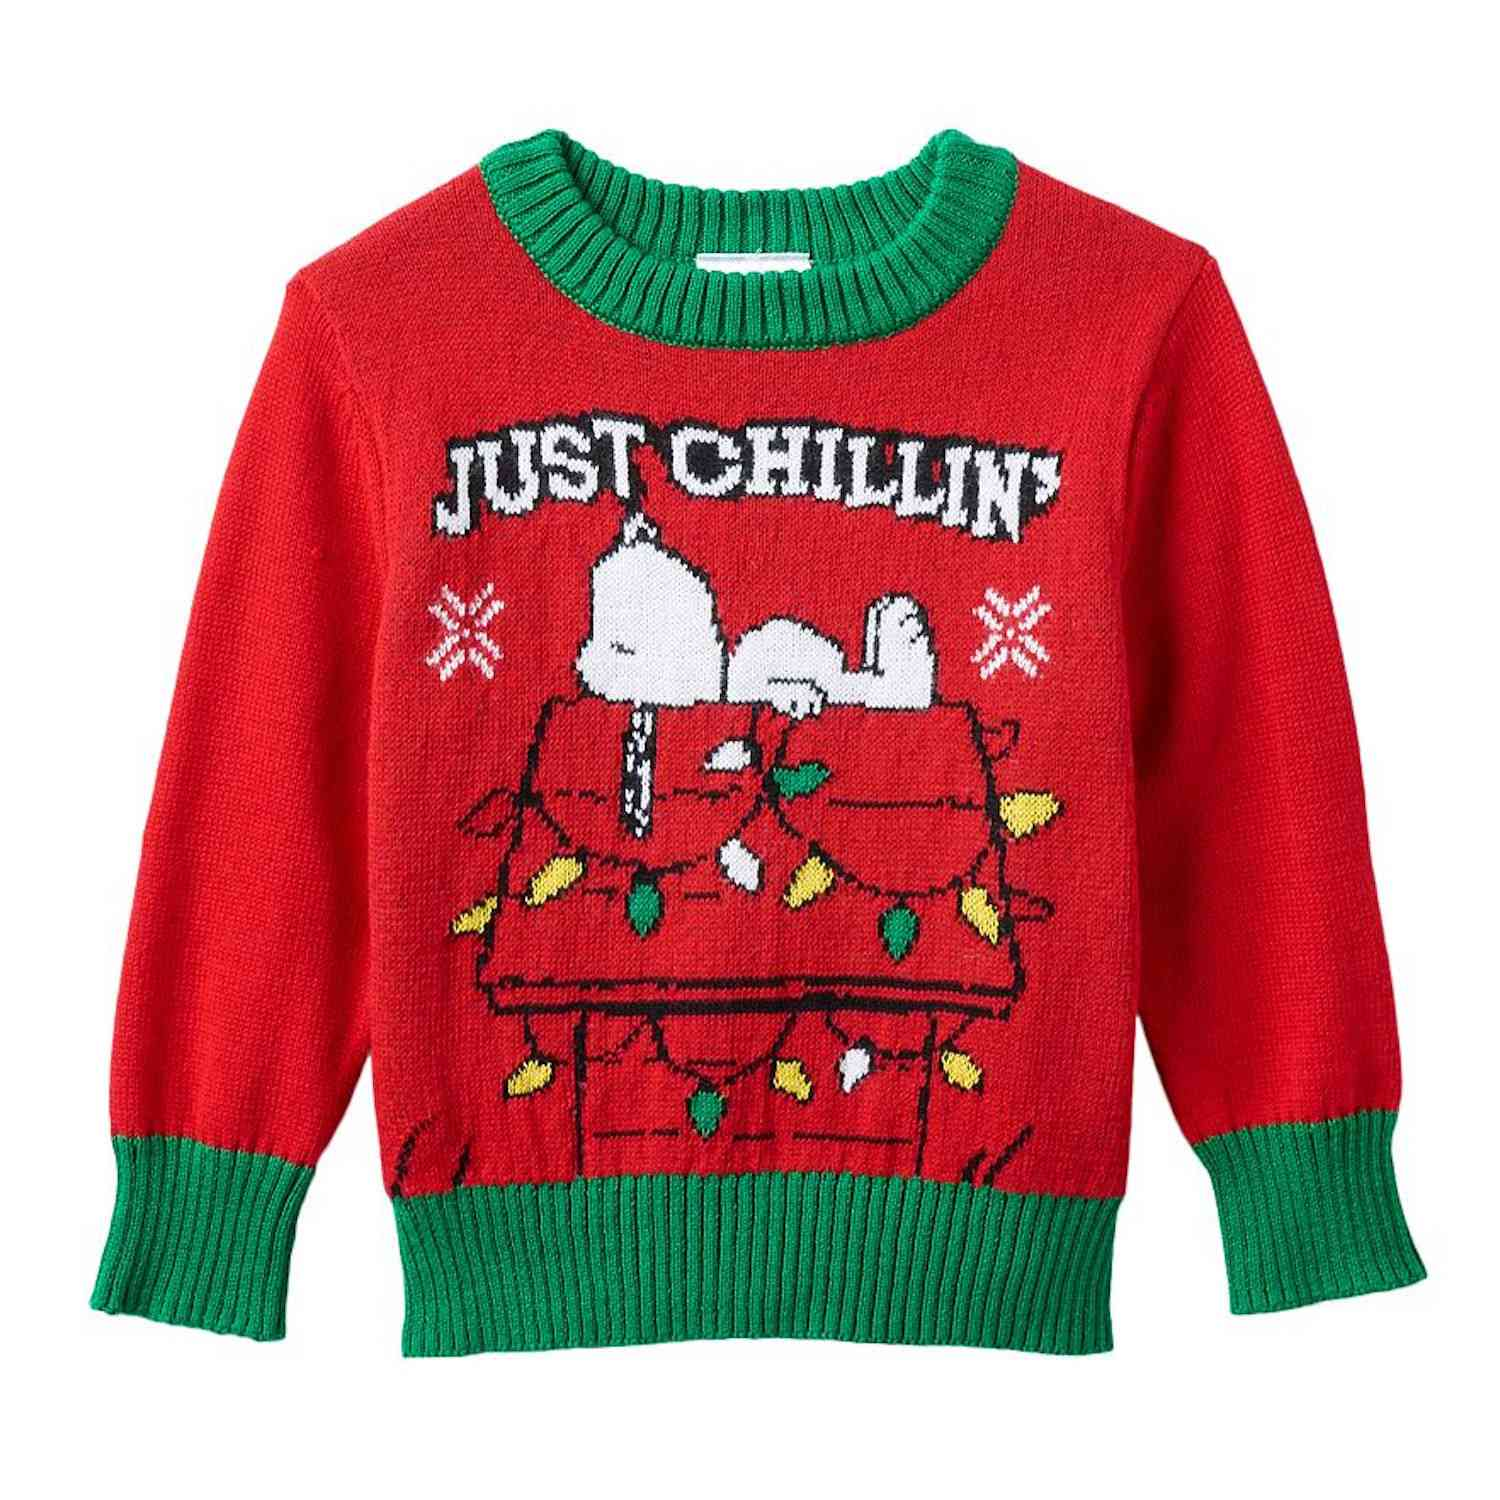 13 Cutest Ugly Christmas Sweaters for Babies